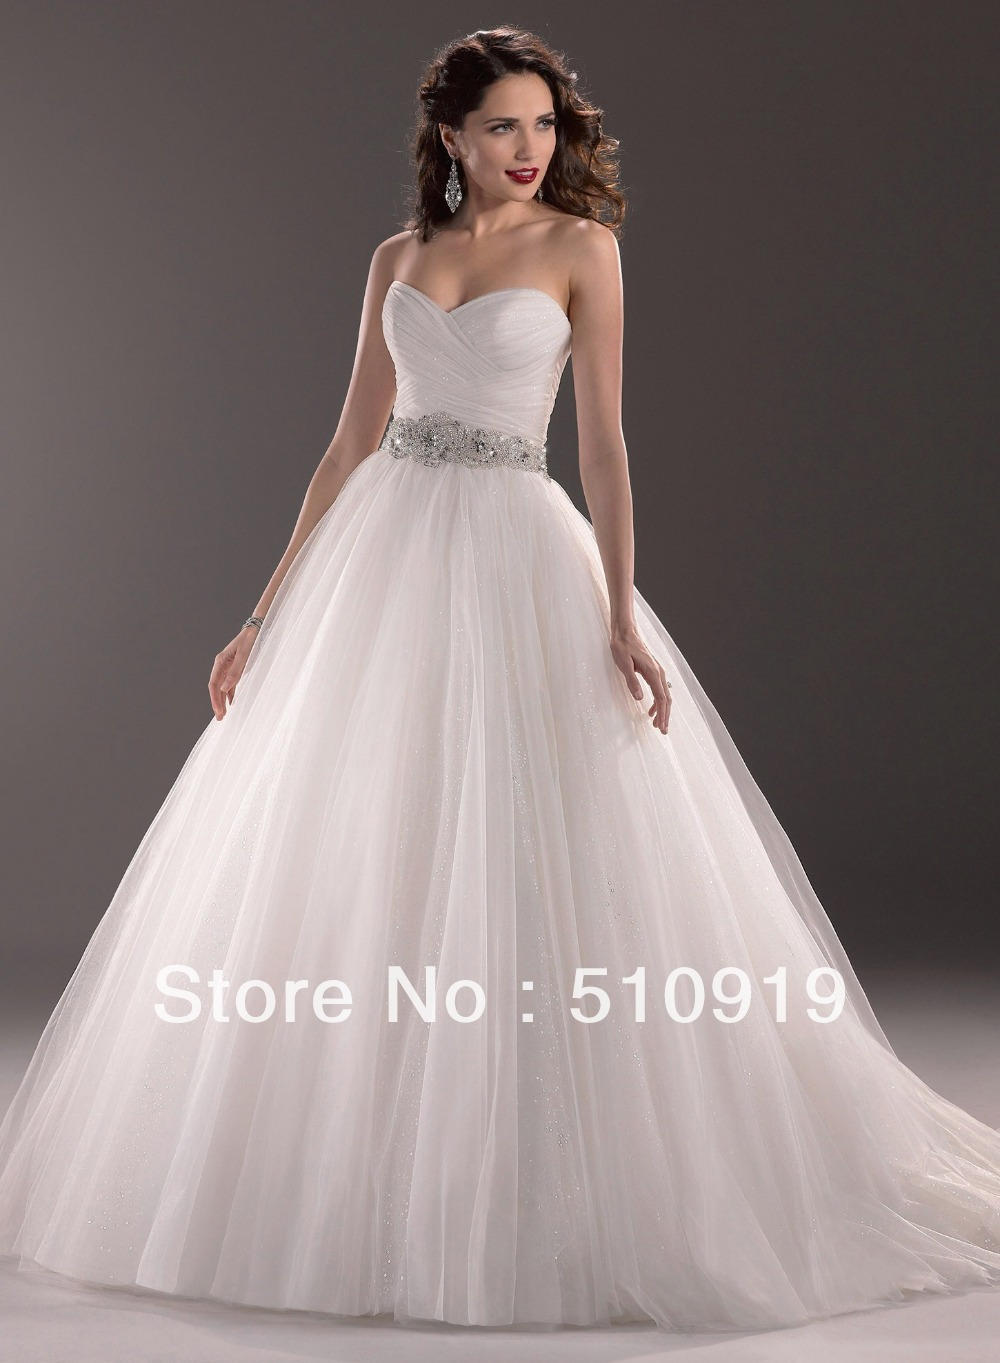 Free Shipping Hot Sale Off Shoulder Crystal Beaded Flying Ball Gown Kleinfeld Wedding Dresses In From Weddings Events On Aliexpress